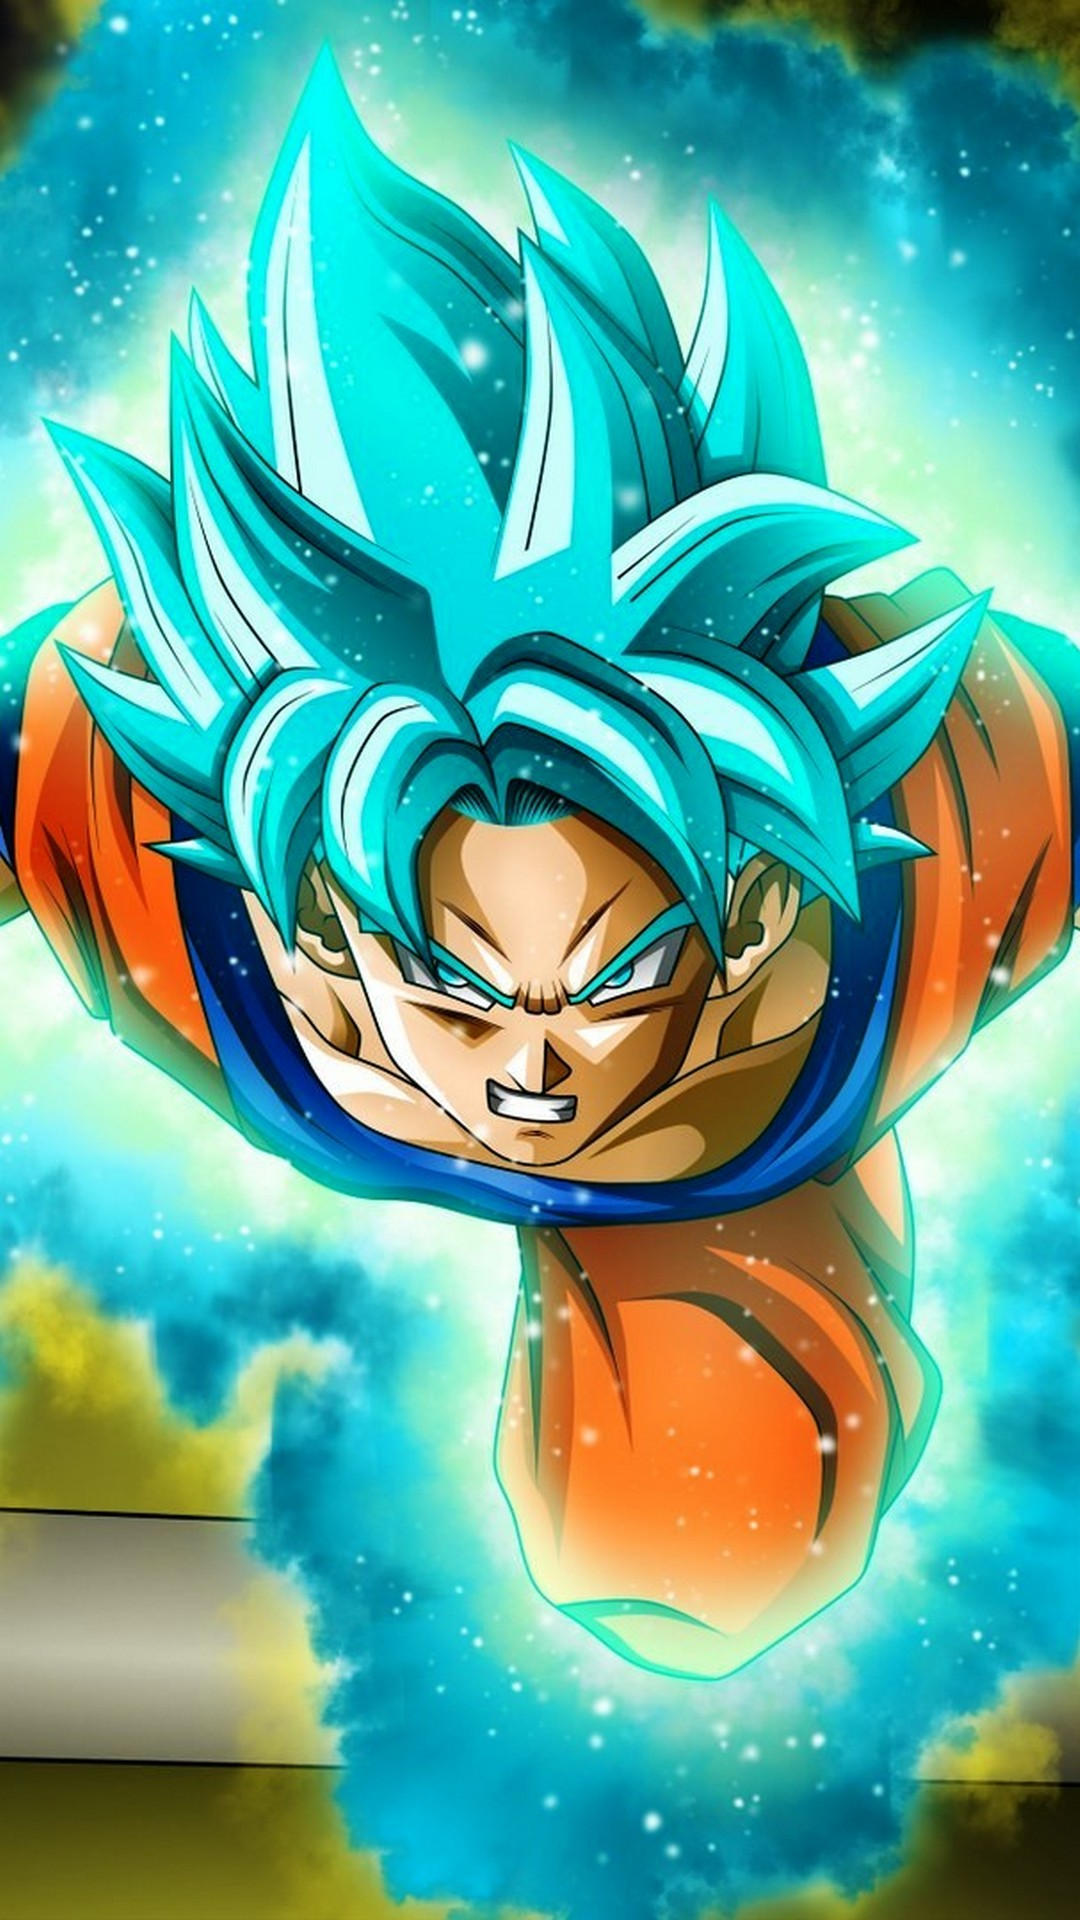 Iphone X Moving Wallpaper From Commercial Goku Ssj Wallpaper Android 2019 Android Wallpapers